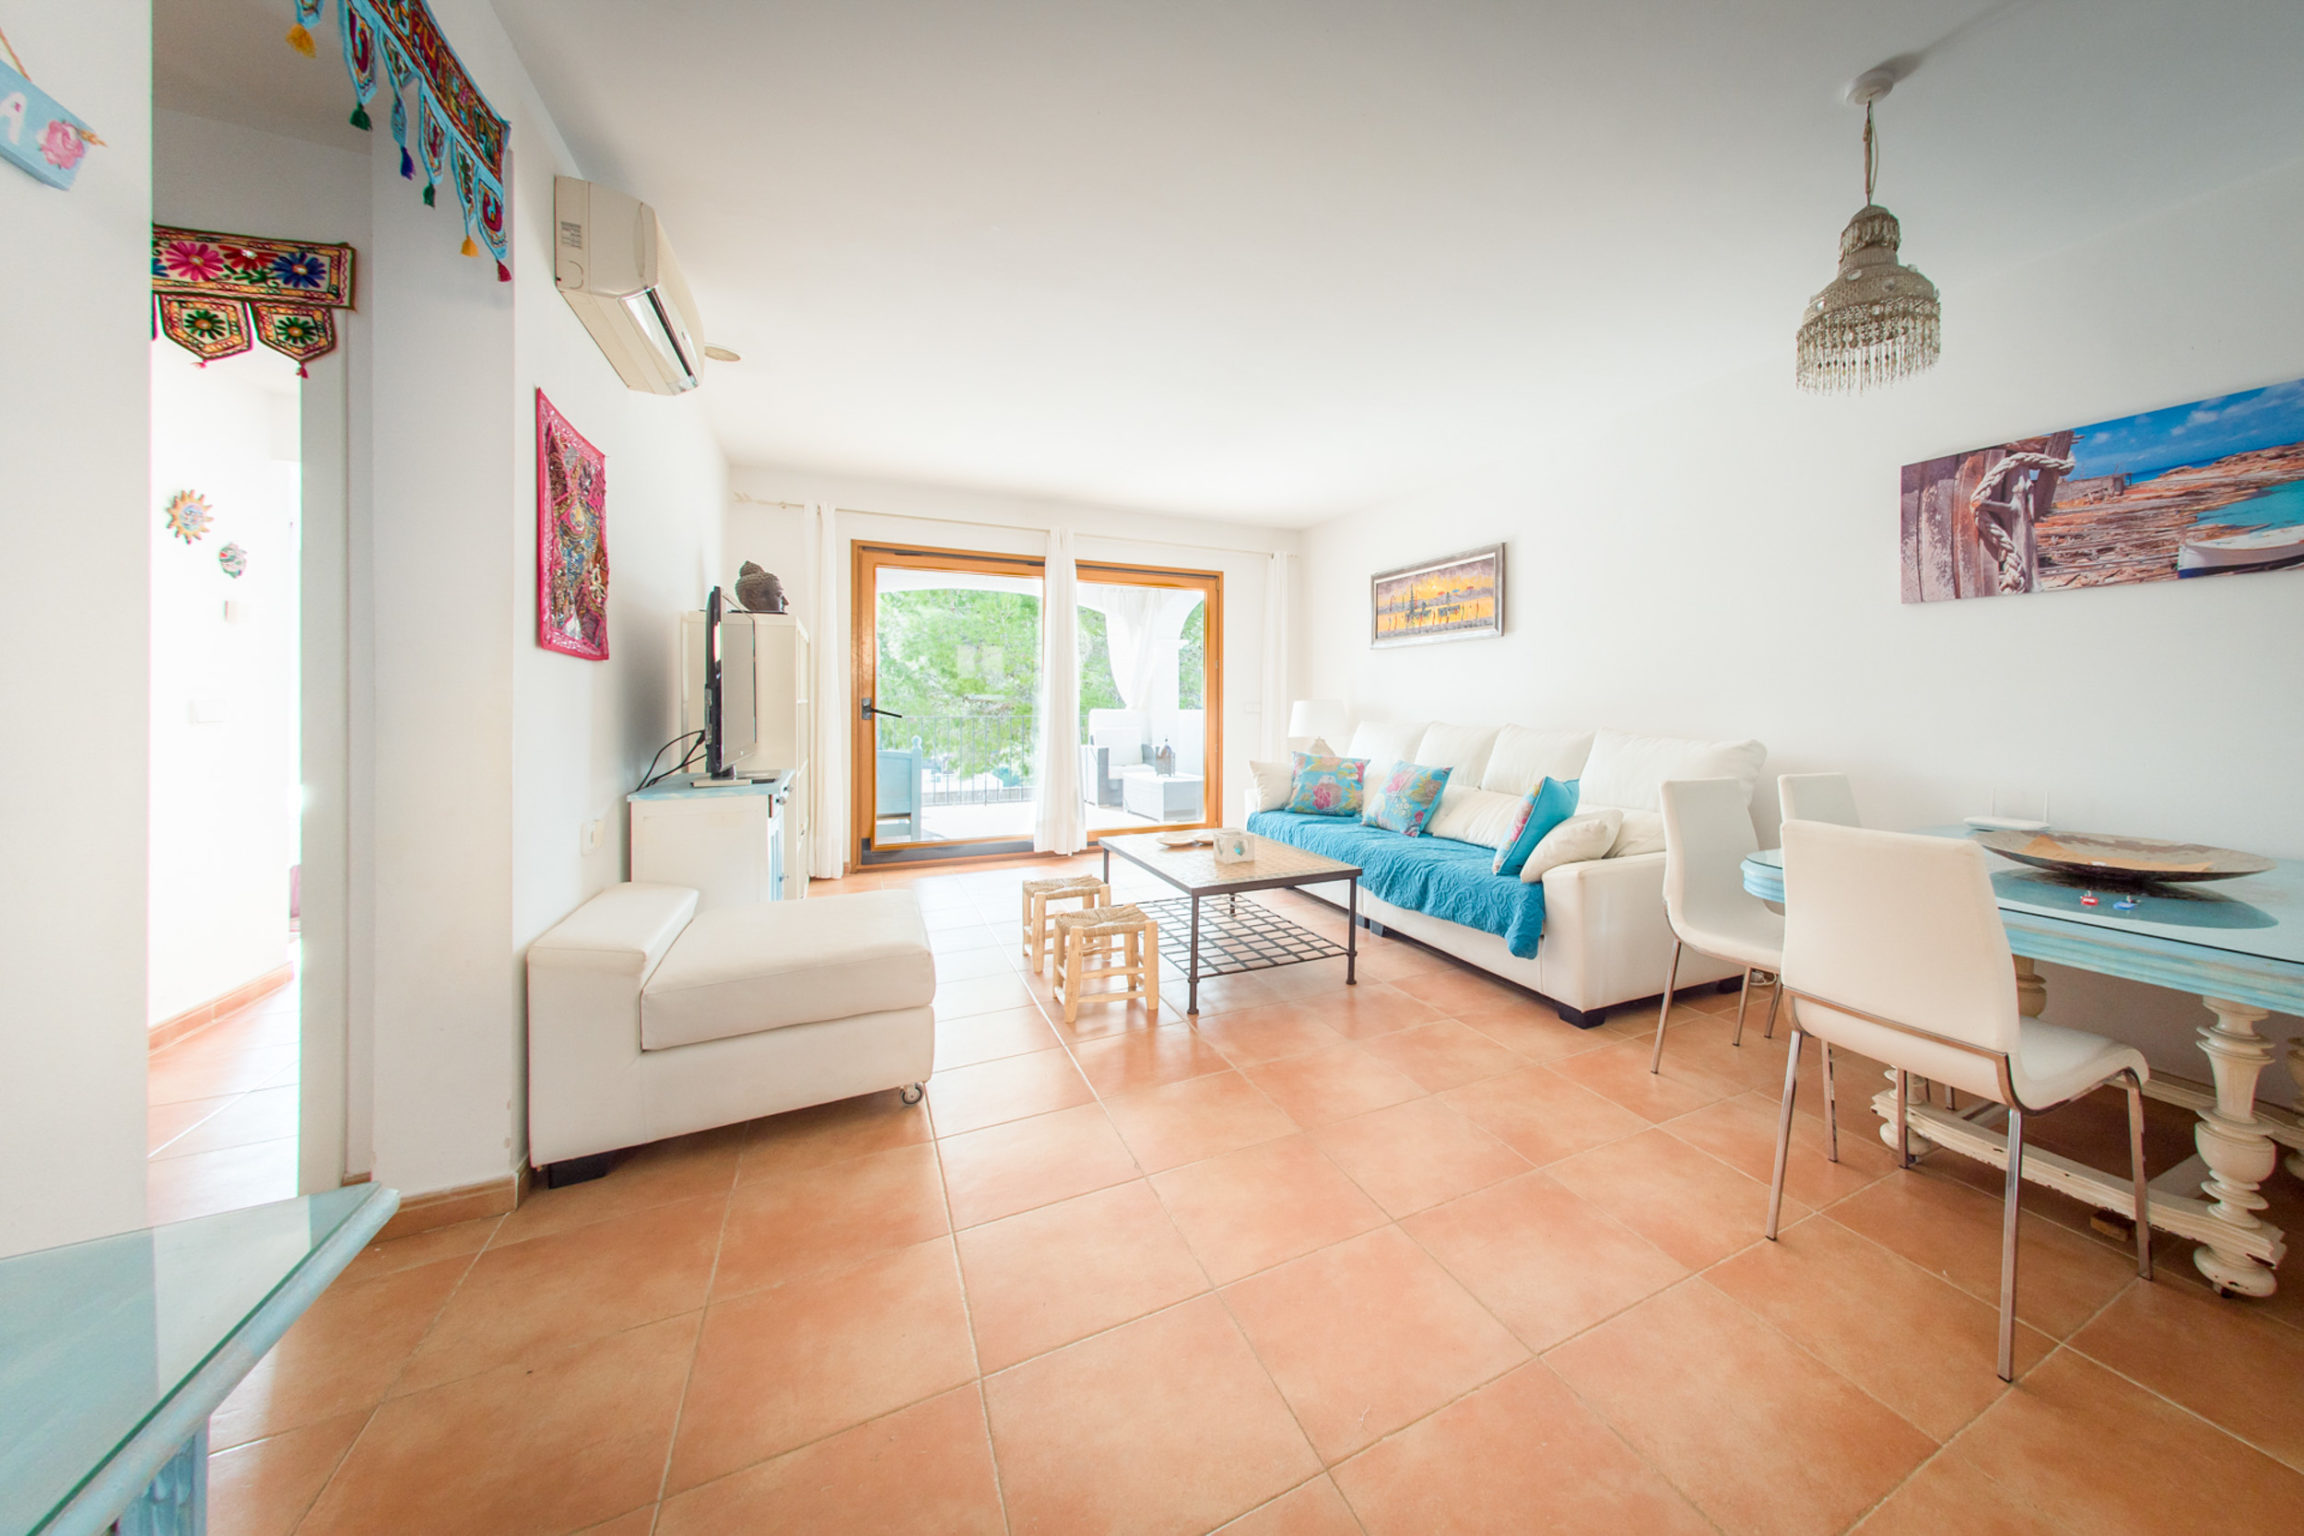 https://www.white-ibiza.com/wp-content/uploads/2020/03/white-ibiza-property-WI137-2020-03-2304x1536.jpg